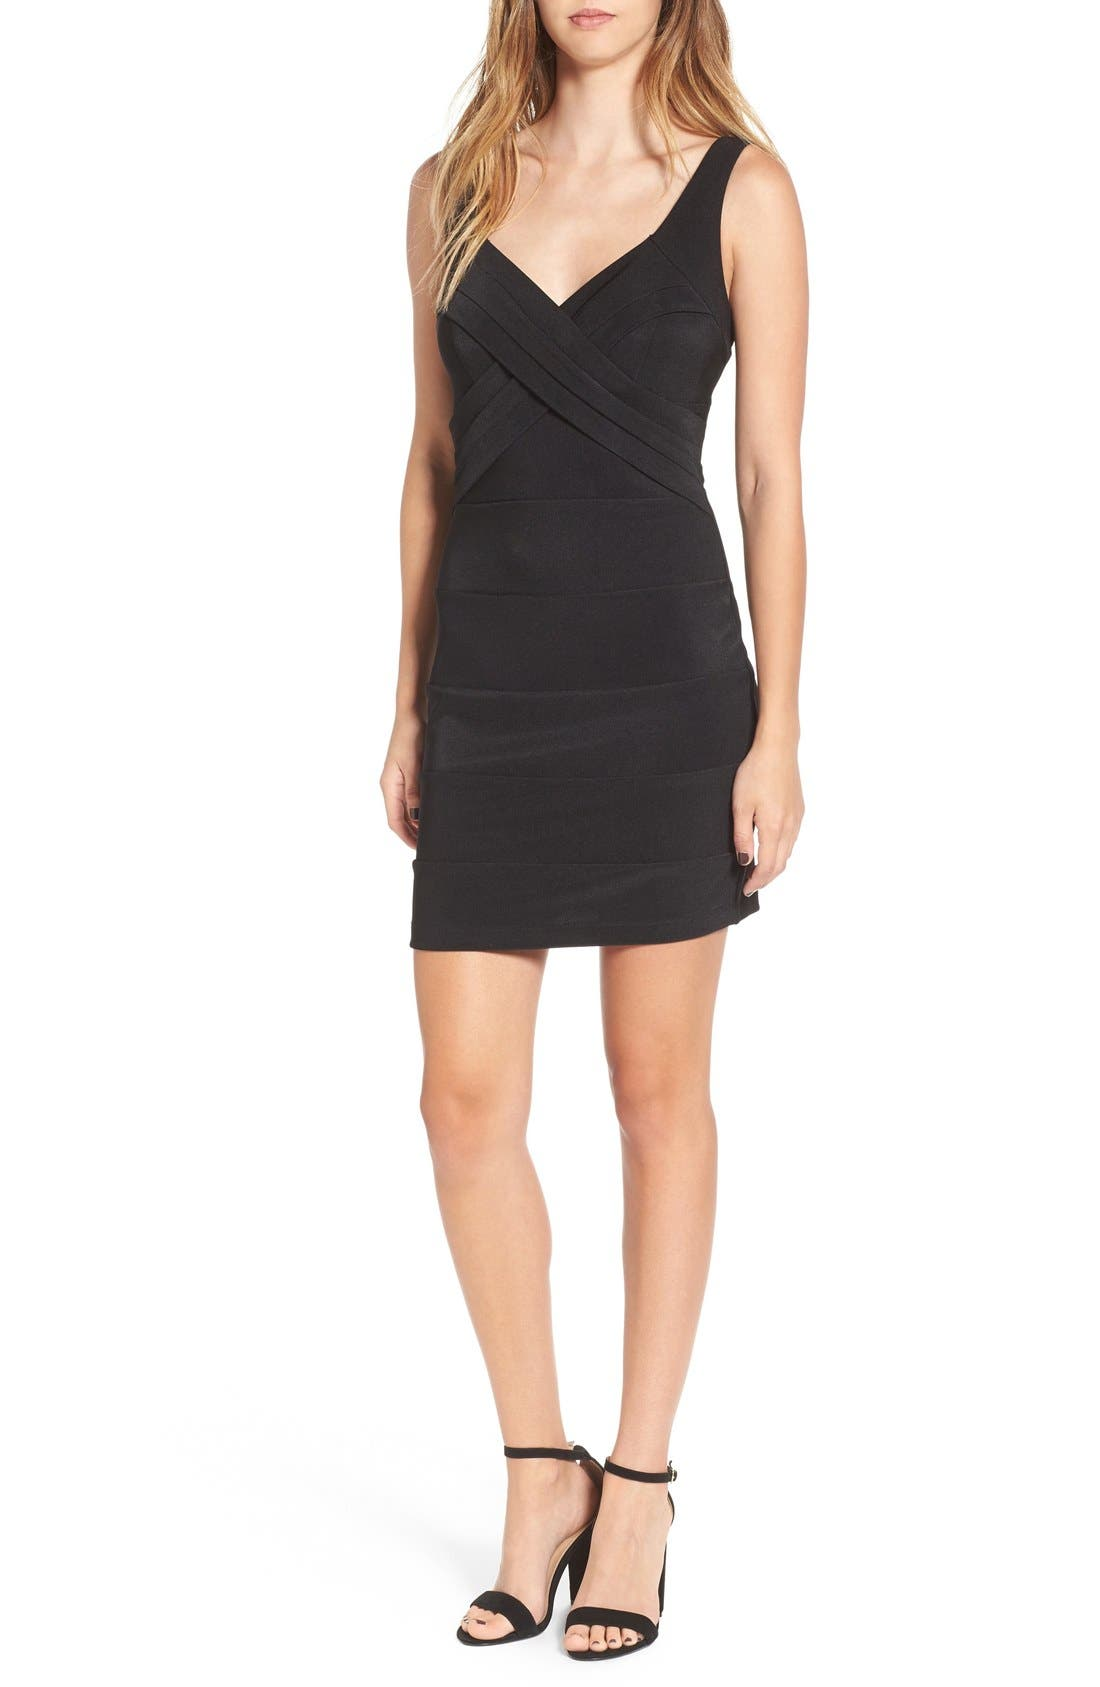 LOVE, NICKIE LEW Cross Front Body-Con Dress, Main, color, 001